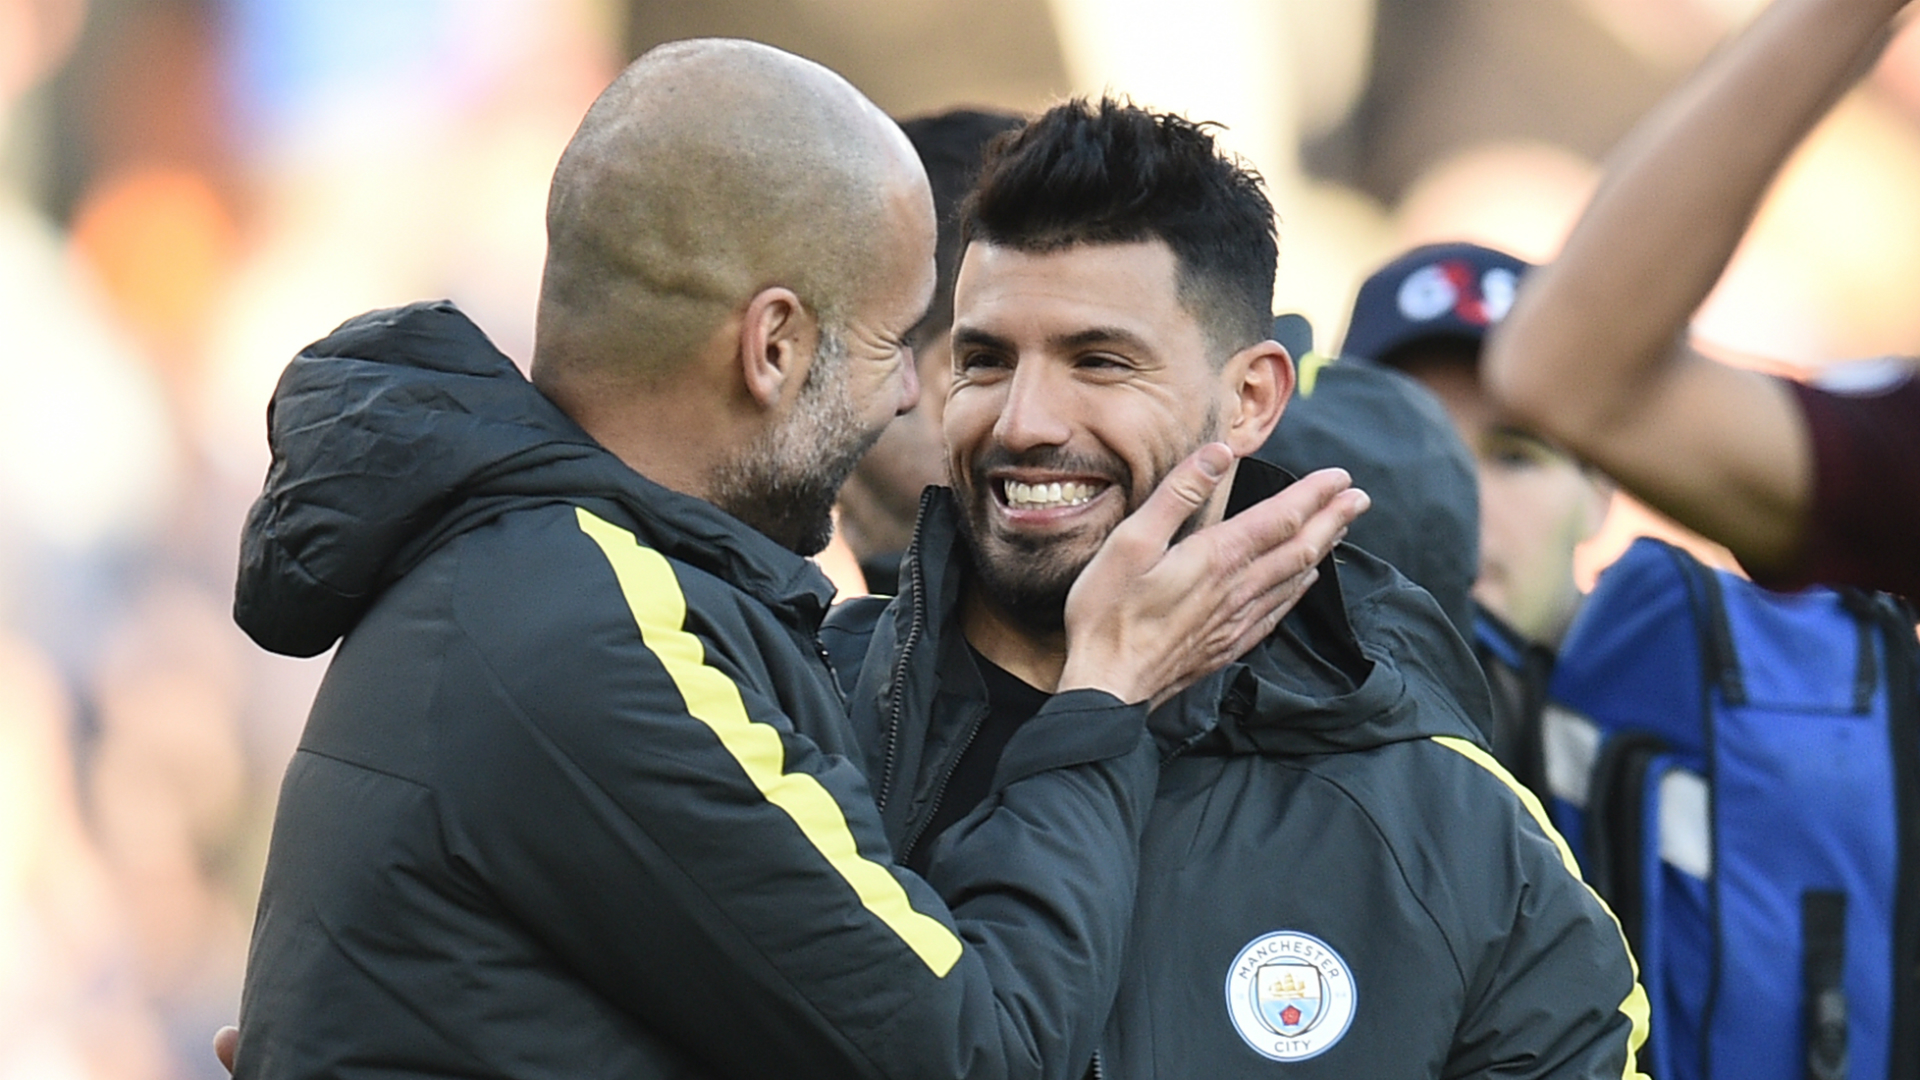 All smiles - Why would Pep want Sergio to leave City this summer?